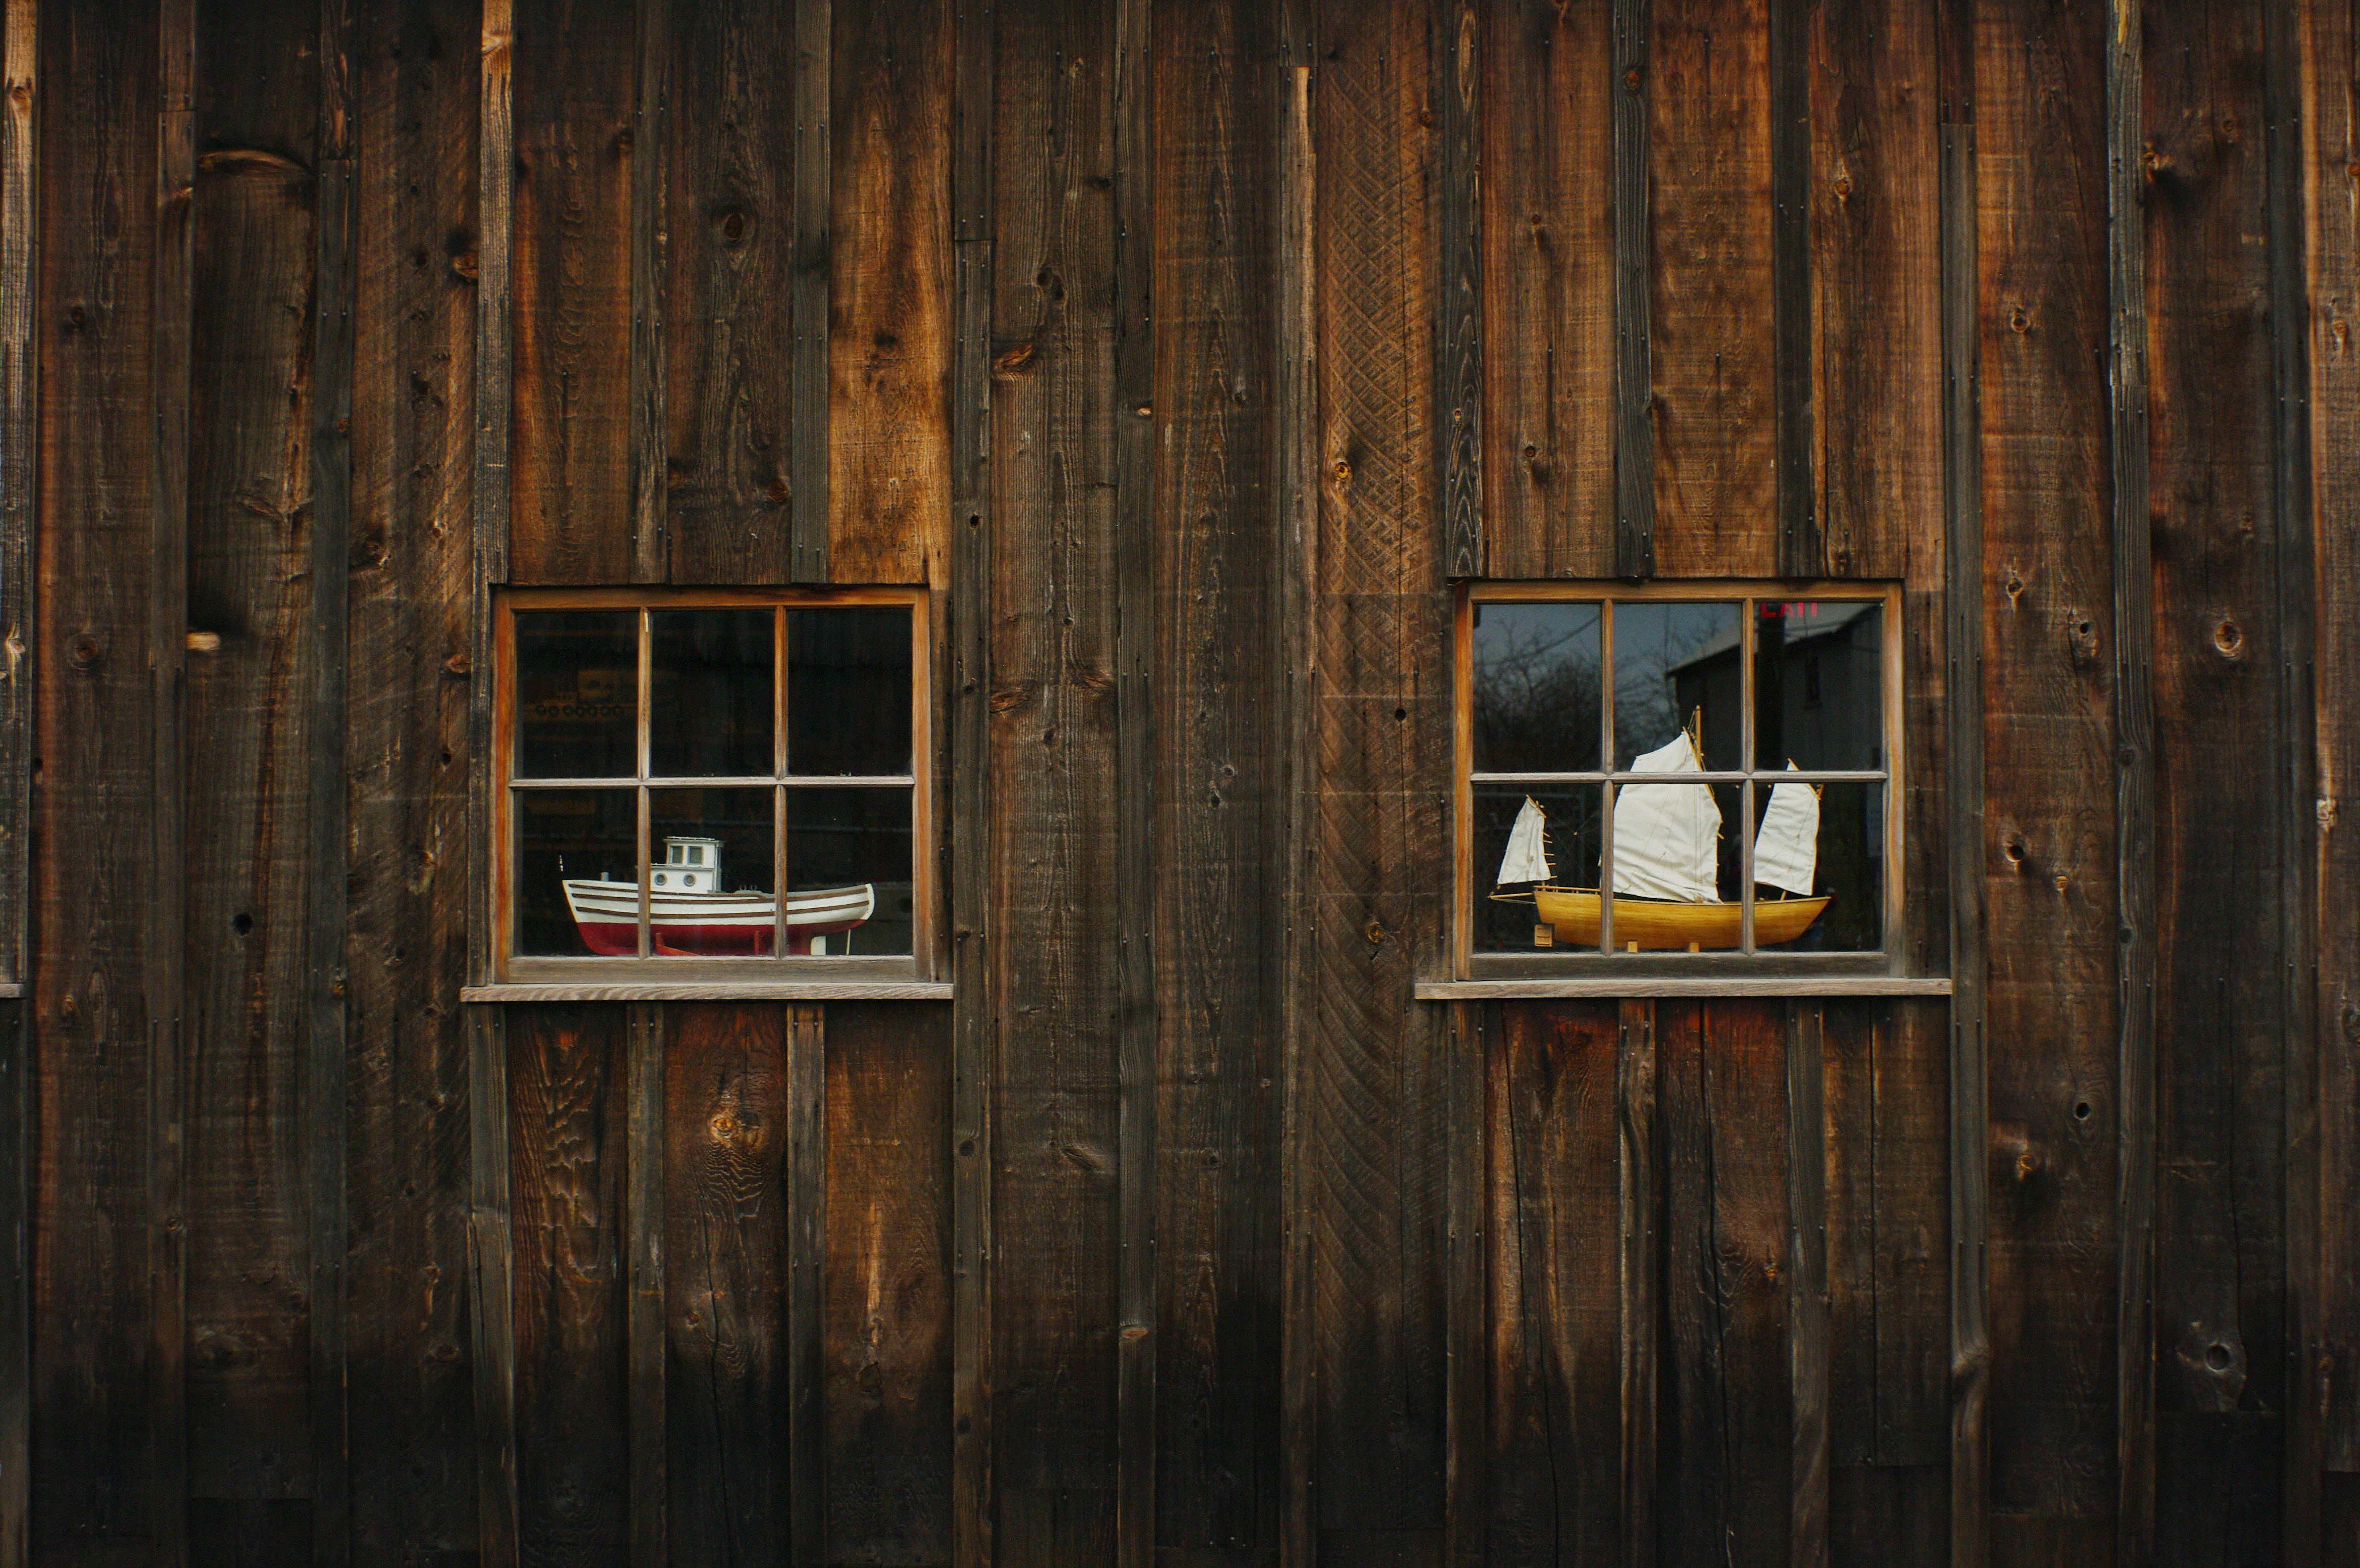 Wooden cabin wall with two windows in the side and sculptures of sailboats inside the cabin